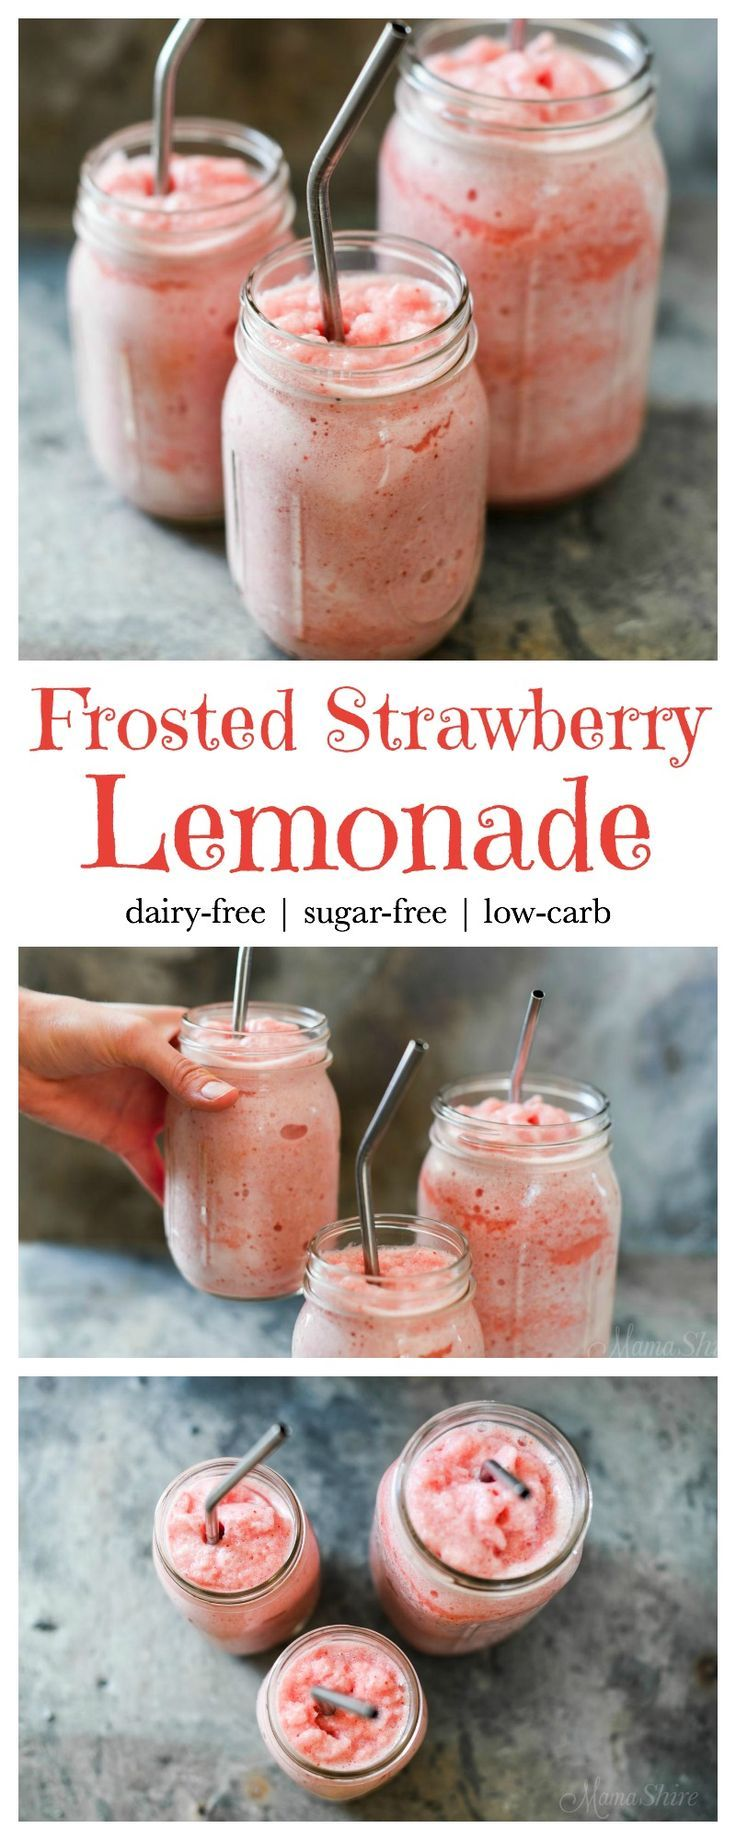 Frosted Strawberry Lemonade - Dairy-free, sugar-free, low-carb, THM, Trim Healthy Mama - FP